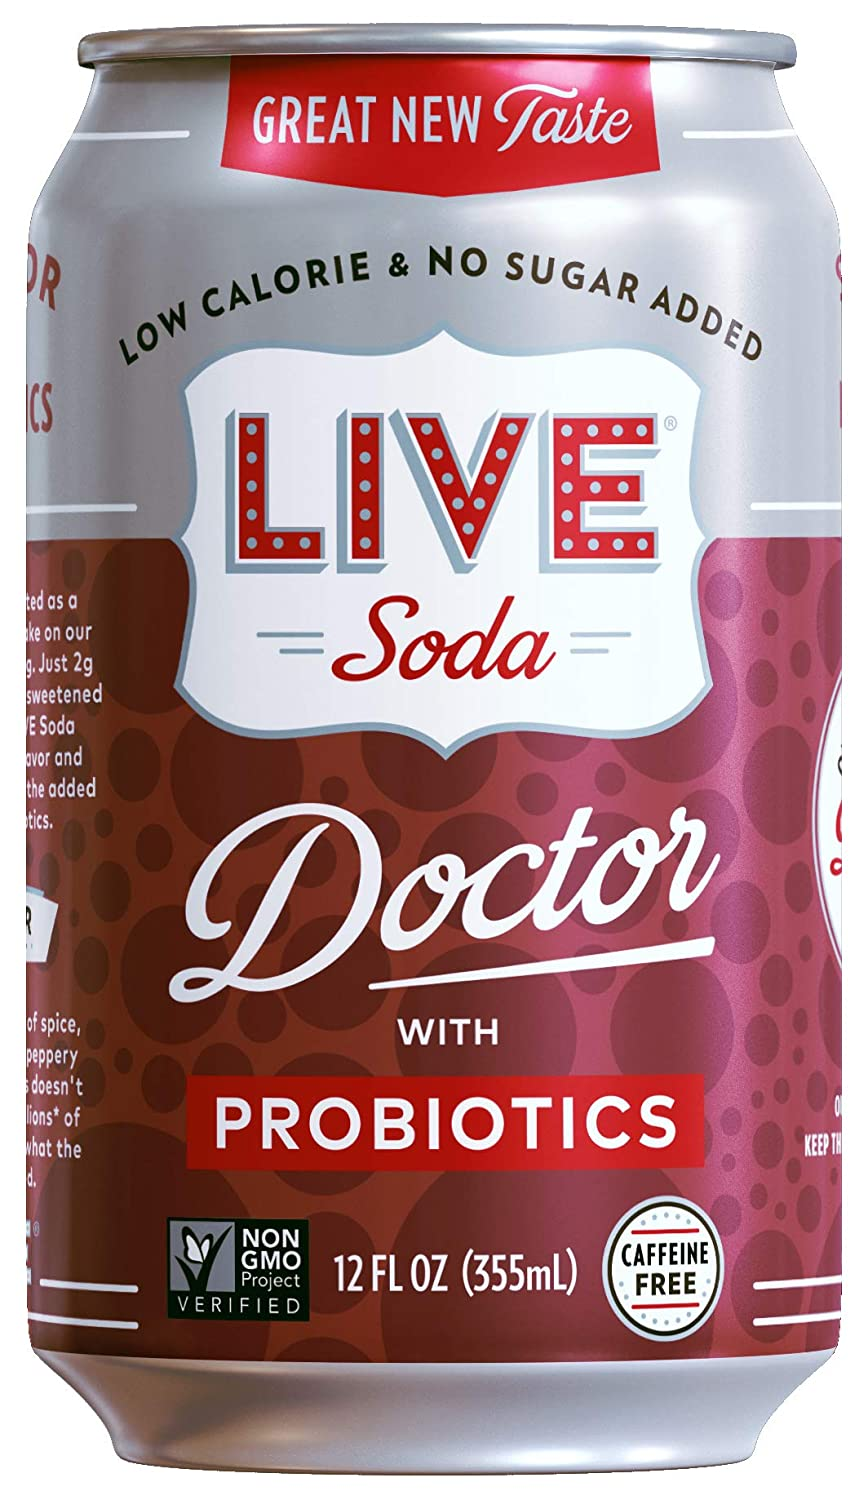 LIVE All Natural Doctor Soda With Probiotics, Low Calorie and No Added Sugar, Pack of 24